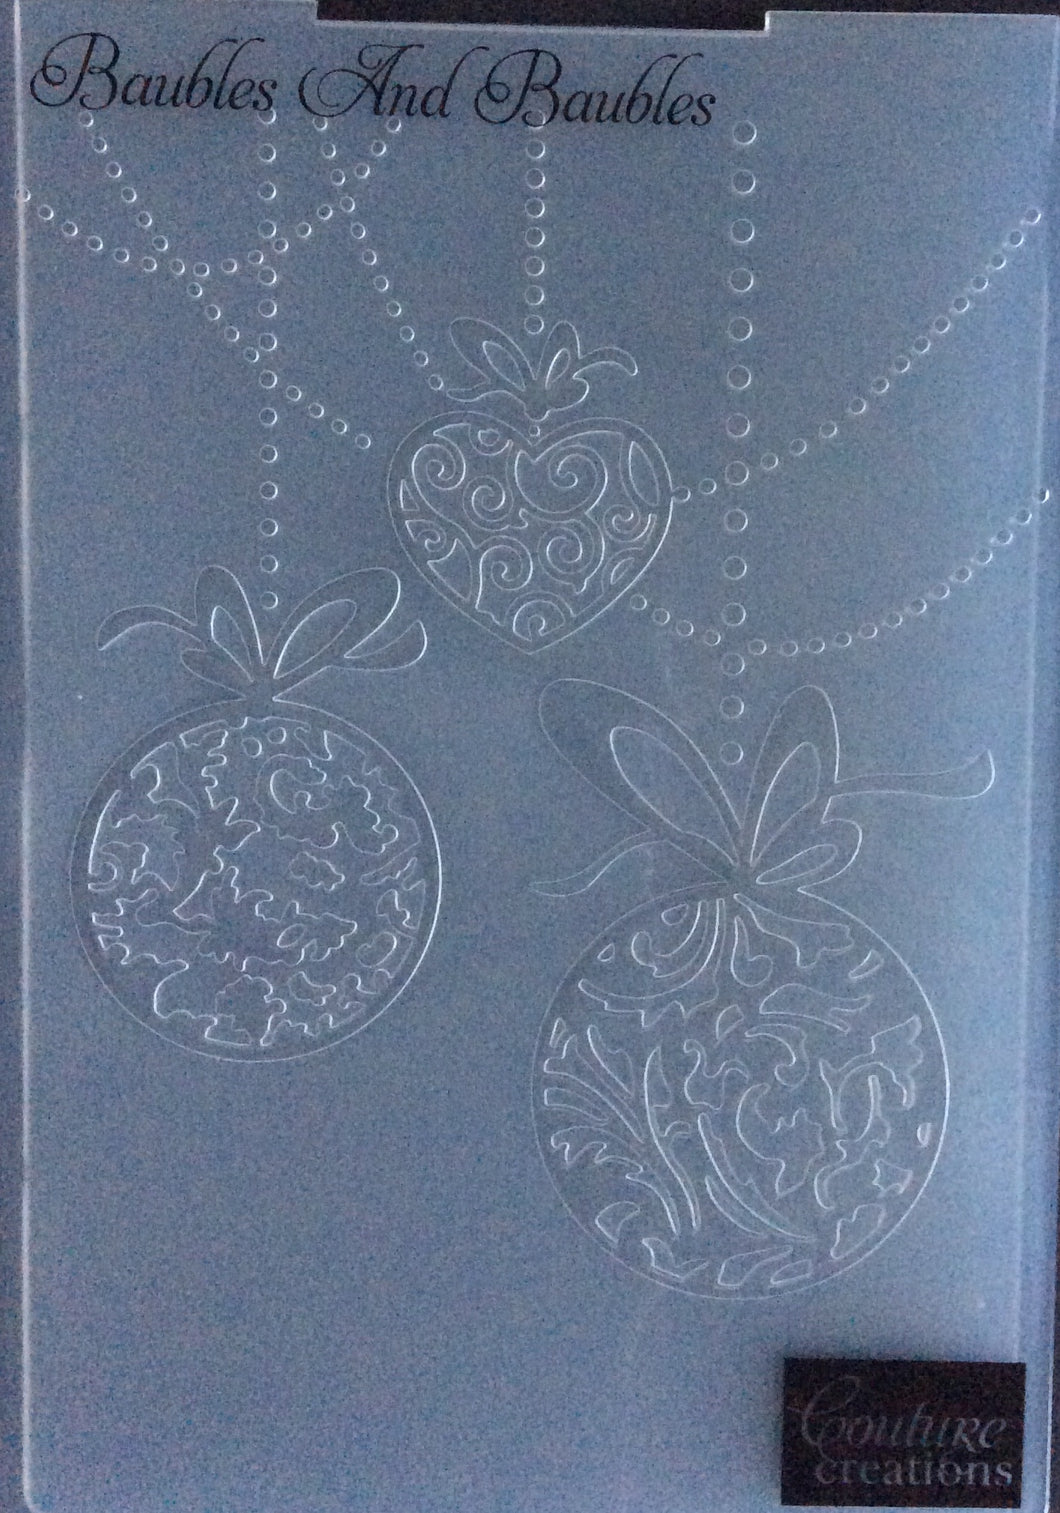 Couture Creations Embossing Folder - Christmas Collection: Baubles and Baubles